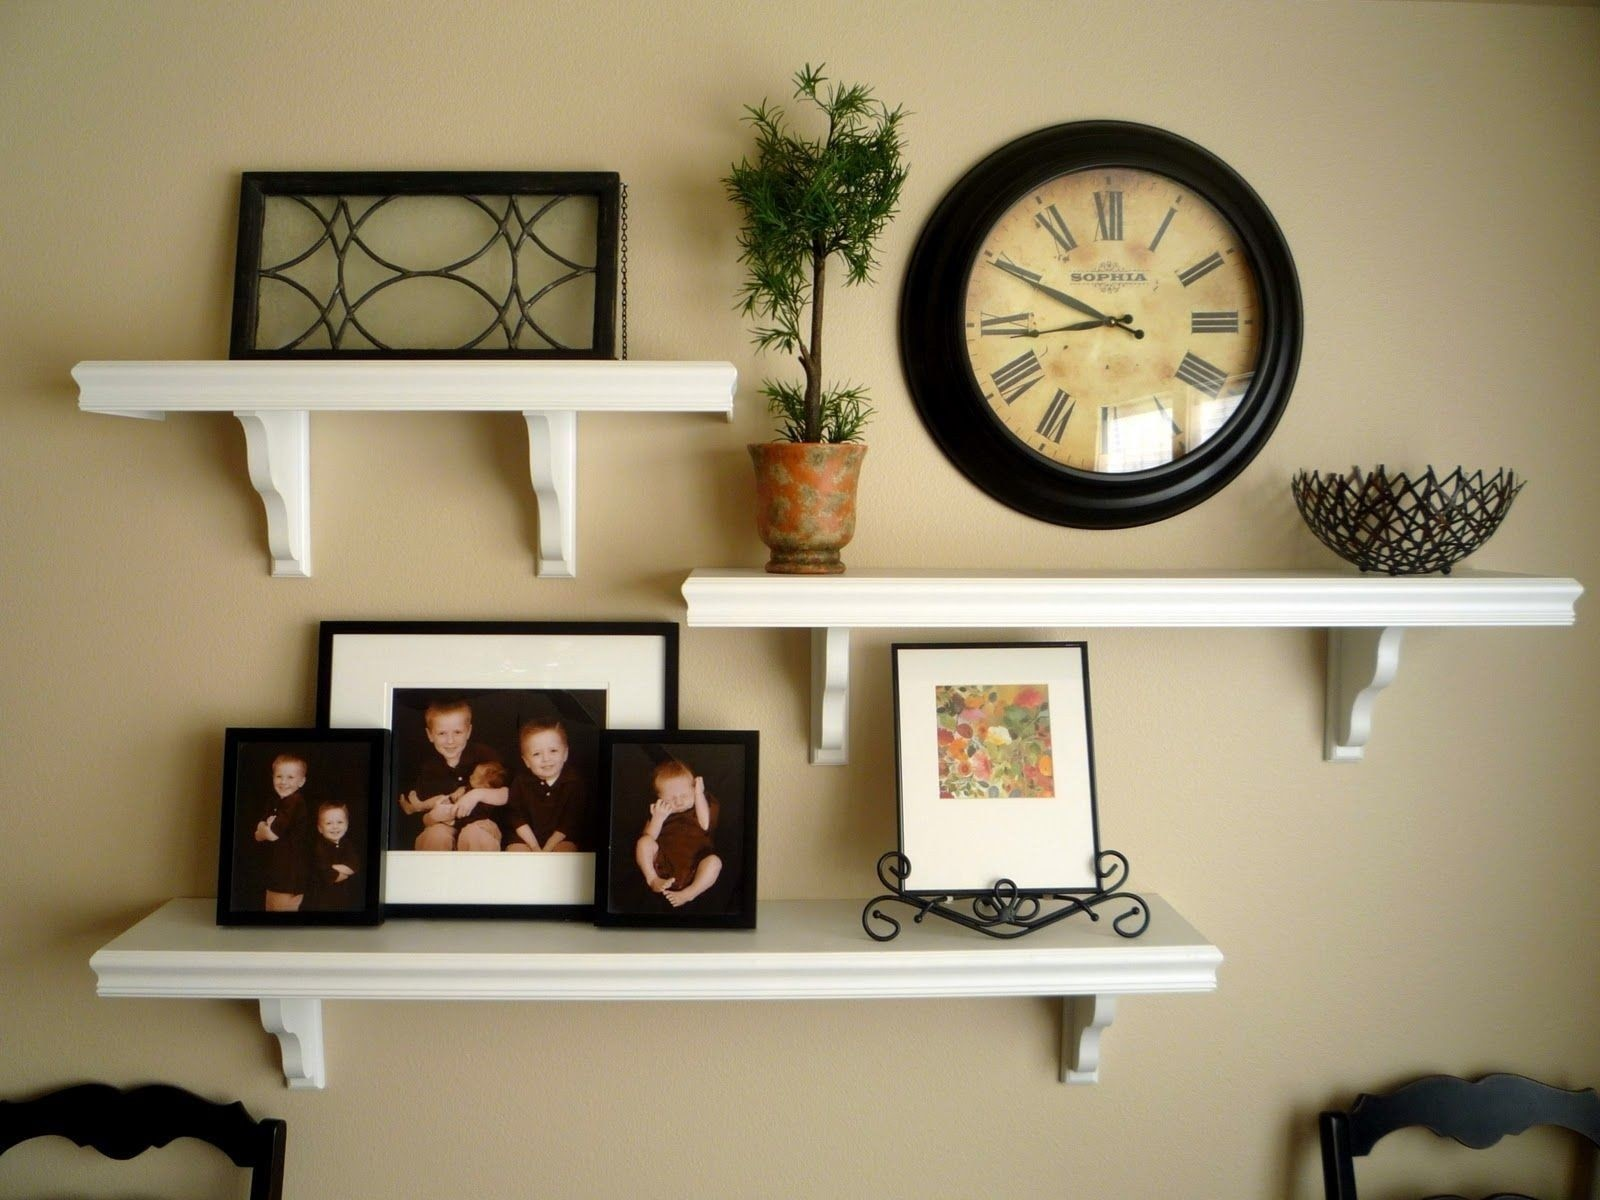 Charmant Wall Shelves Ideas Living Room